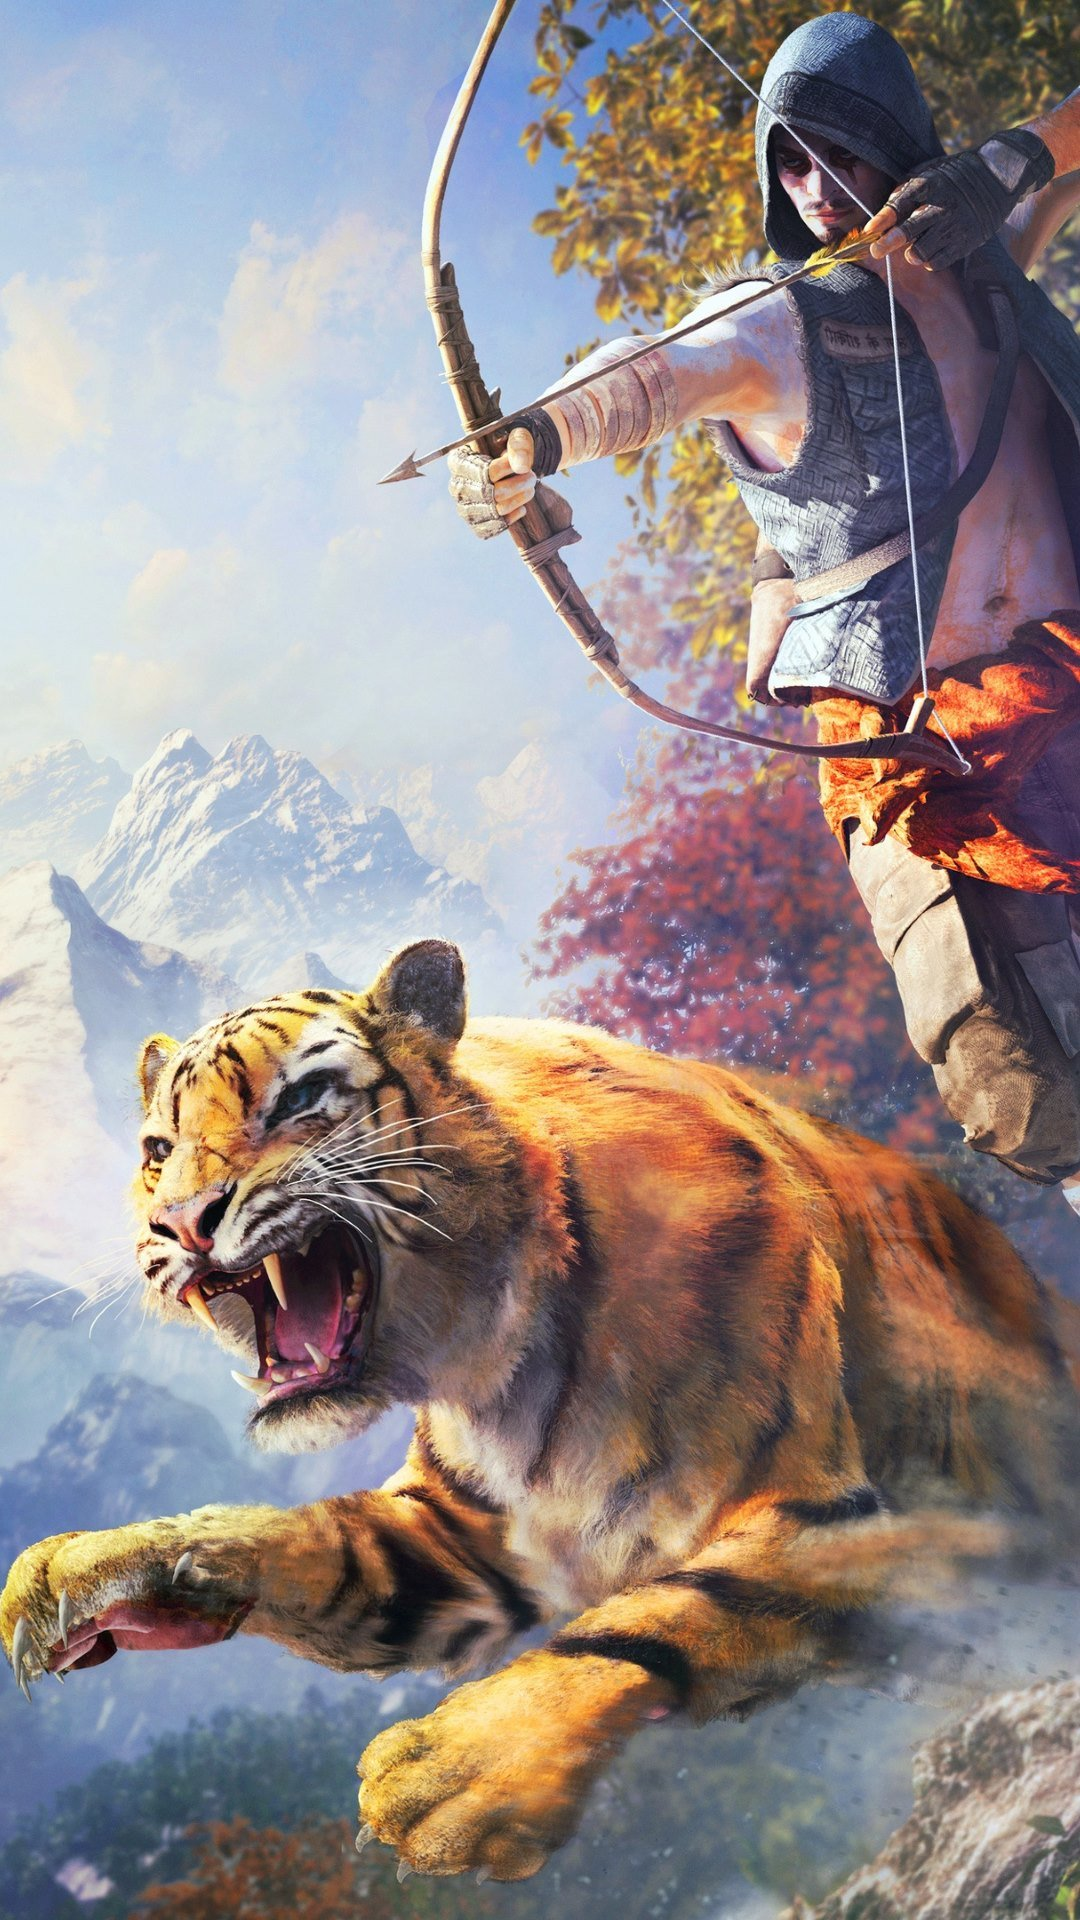 far cry 4 4k wallpaper - wallpapersafari